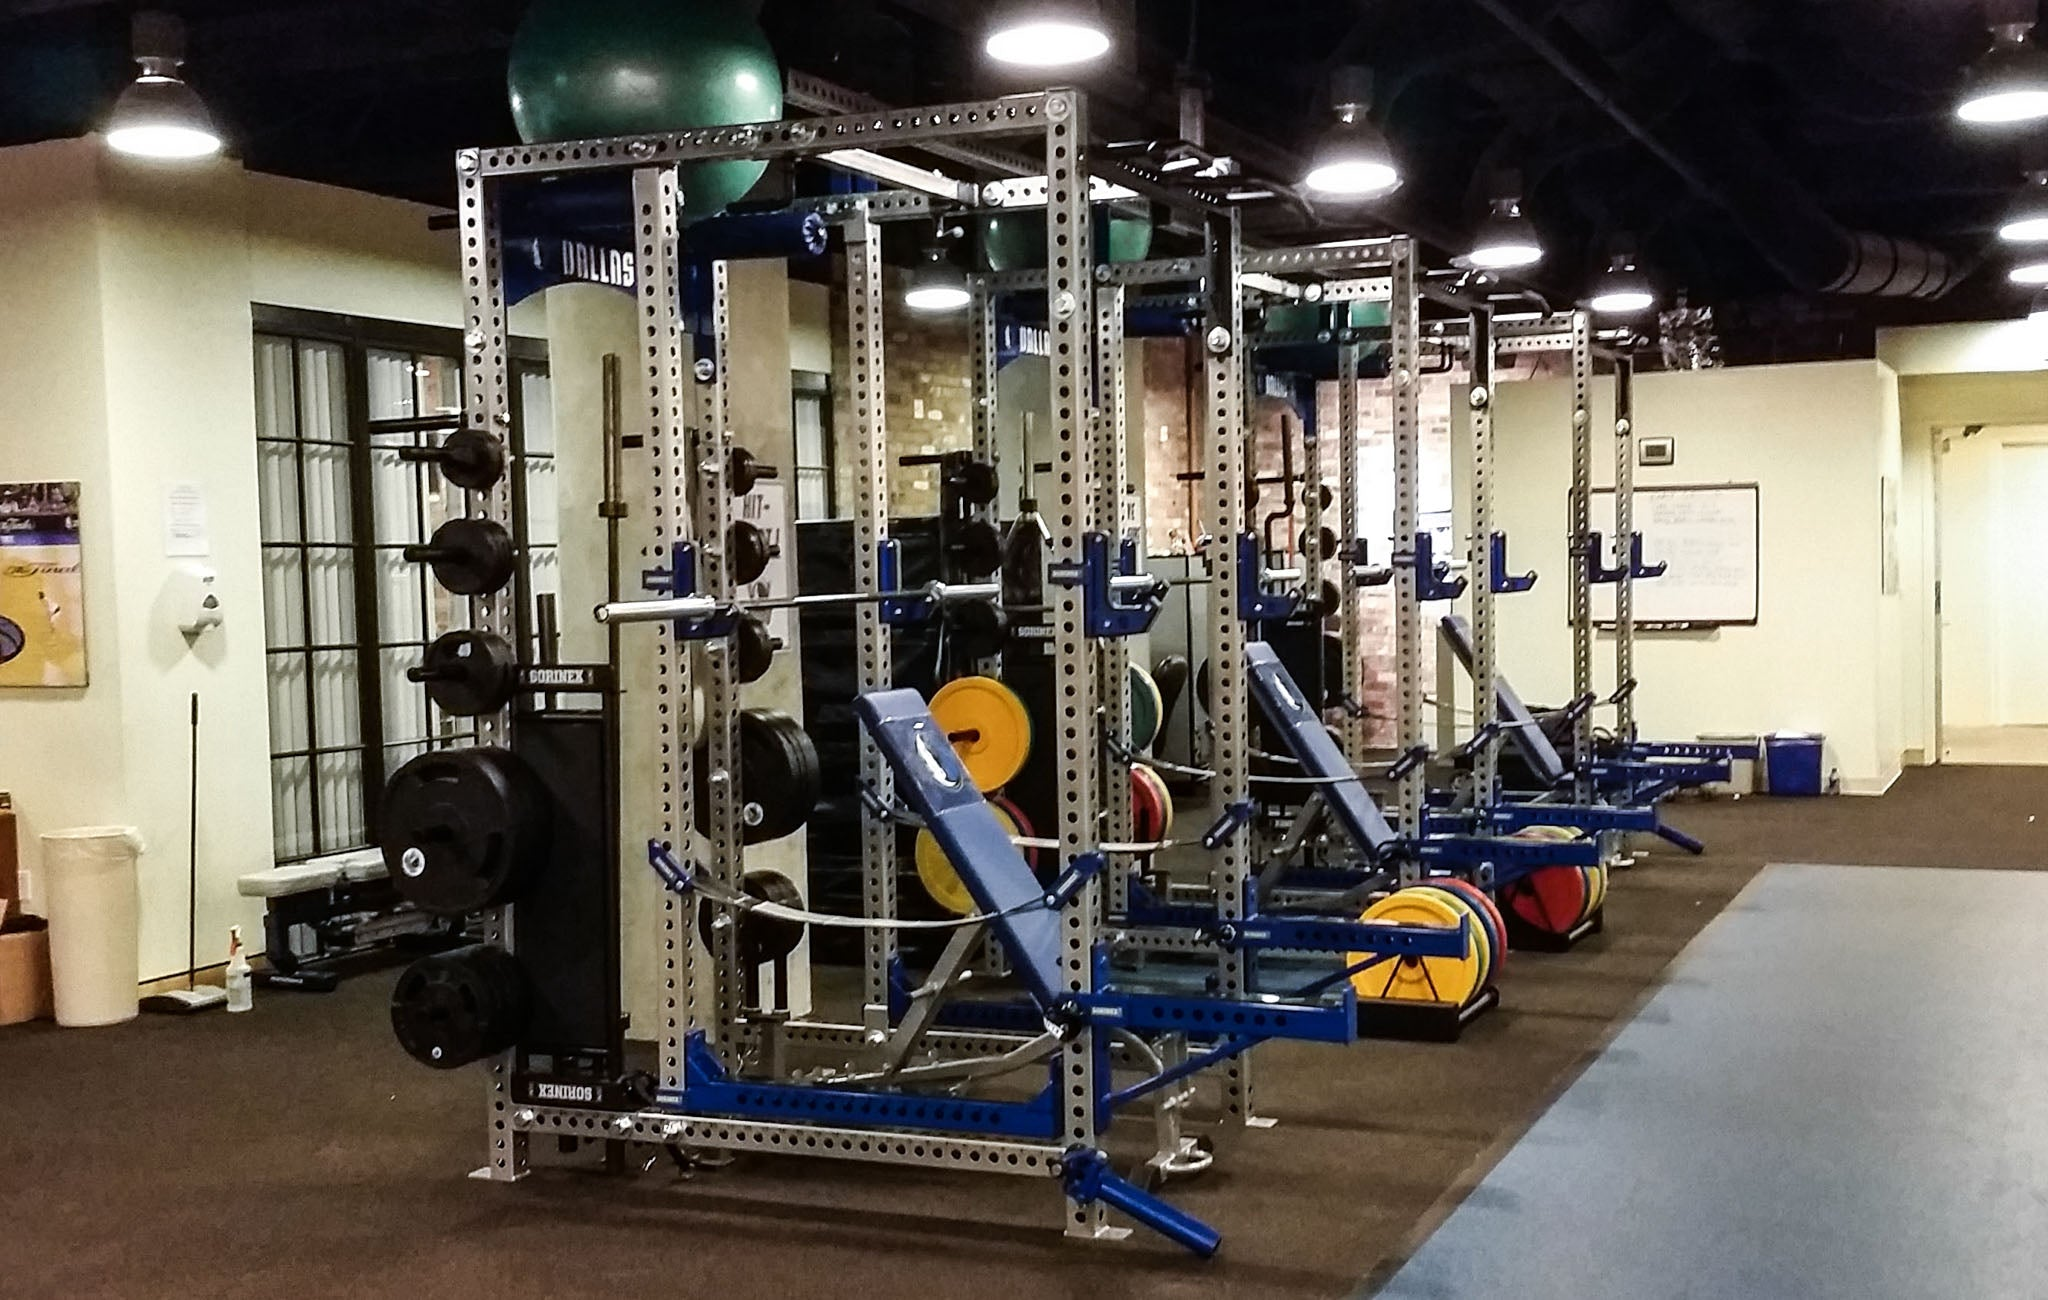 sorinex Professional Weight Rooms